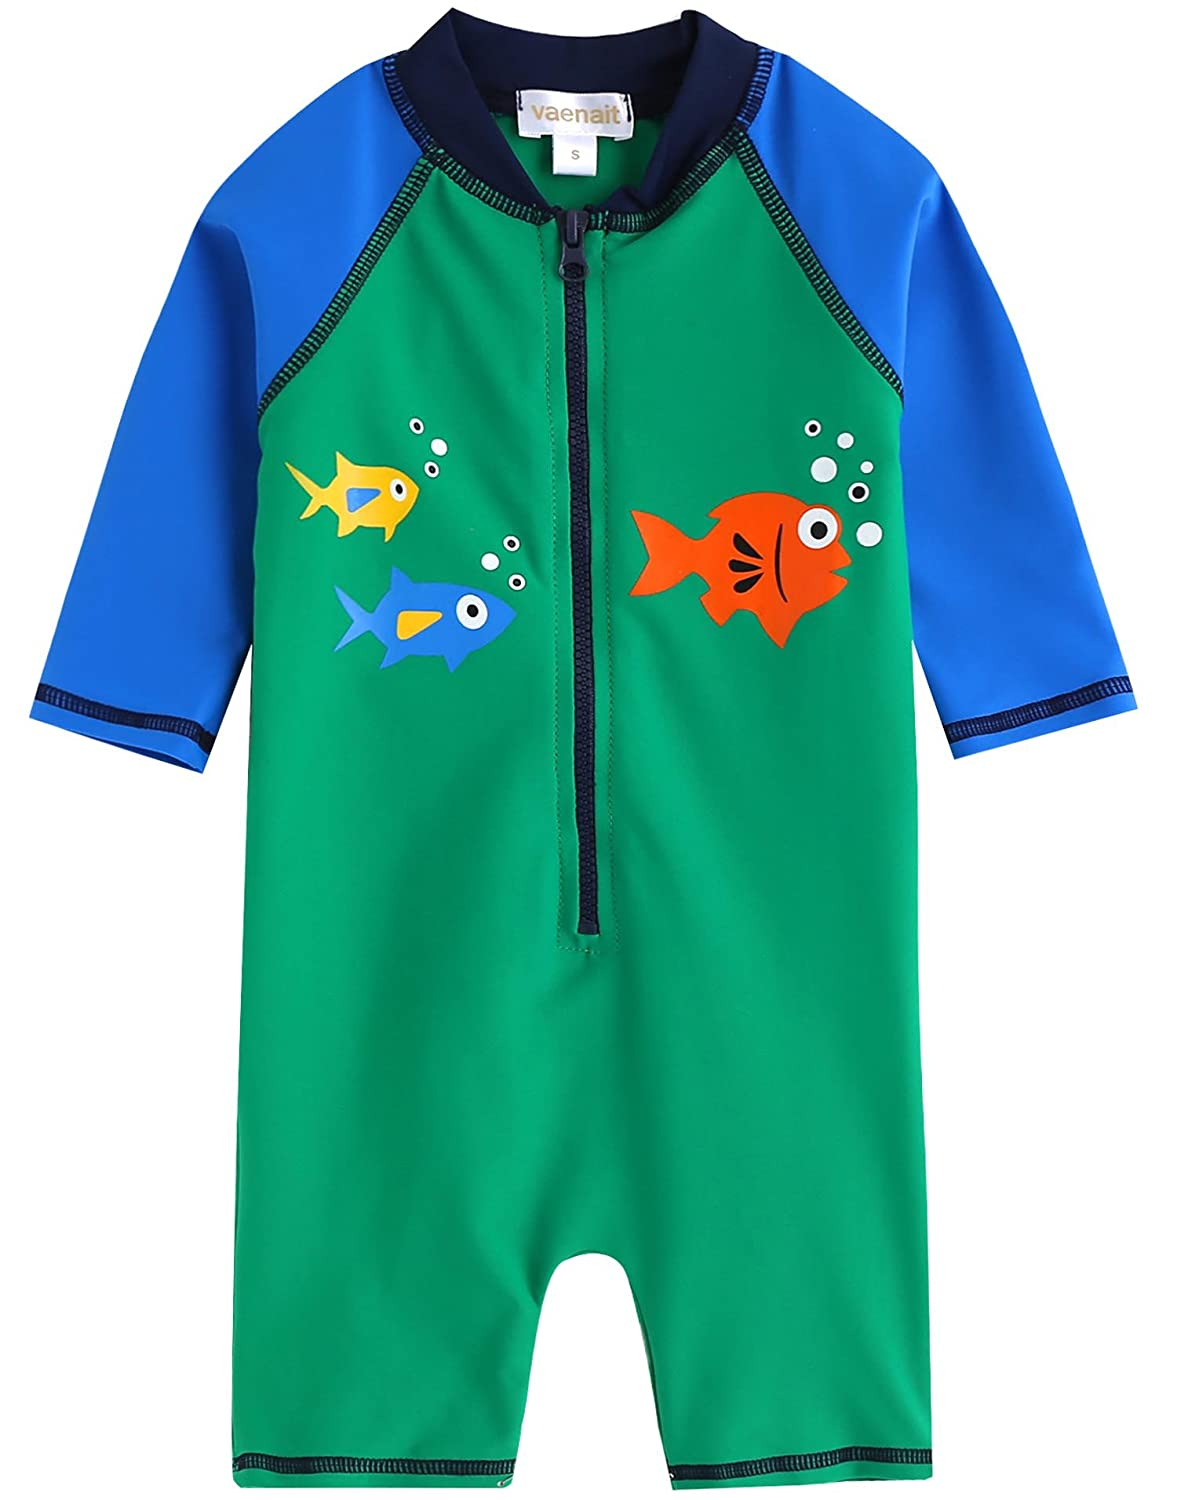 Vaenait baby 0-24M Infant Baby Boys Rashguard Swimsuits Sunsuits Rashguard Shirts FBA_BSW_035